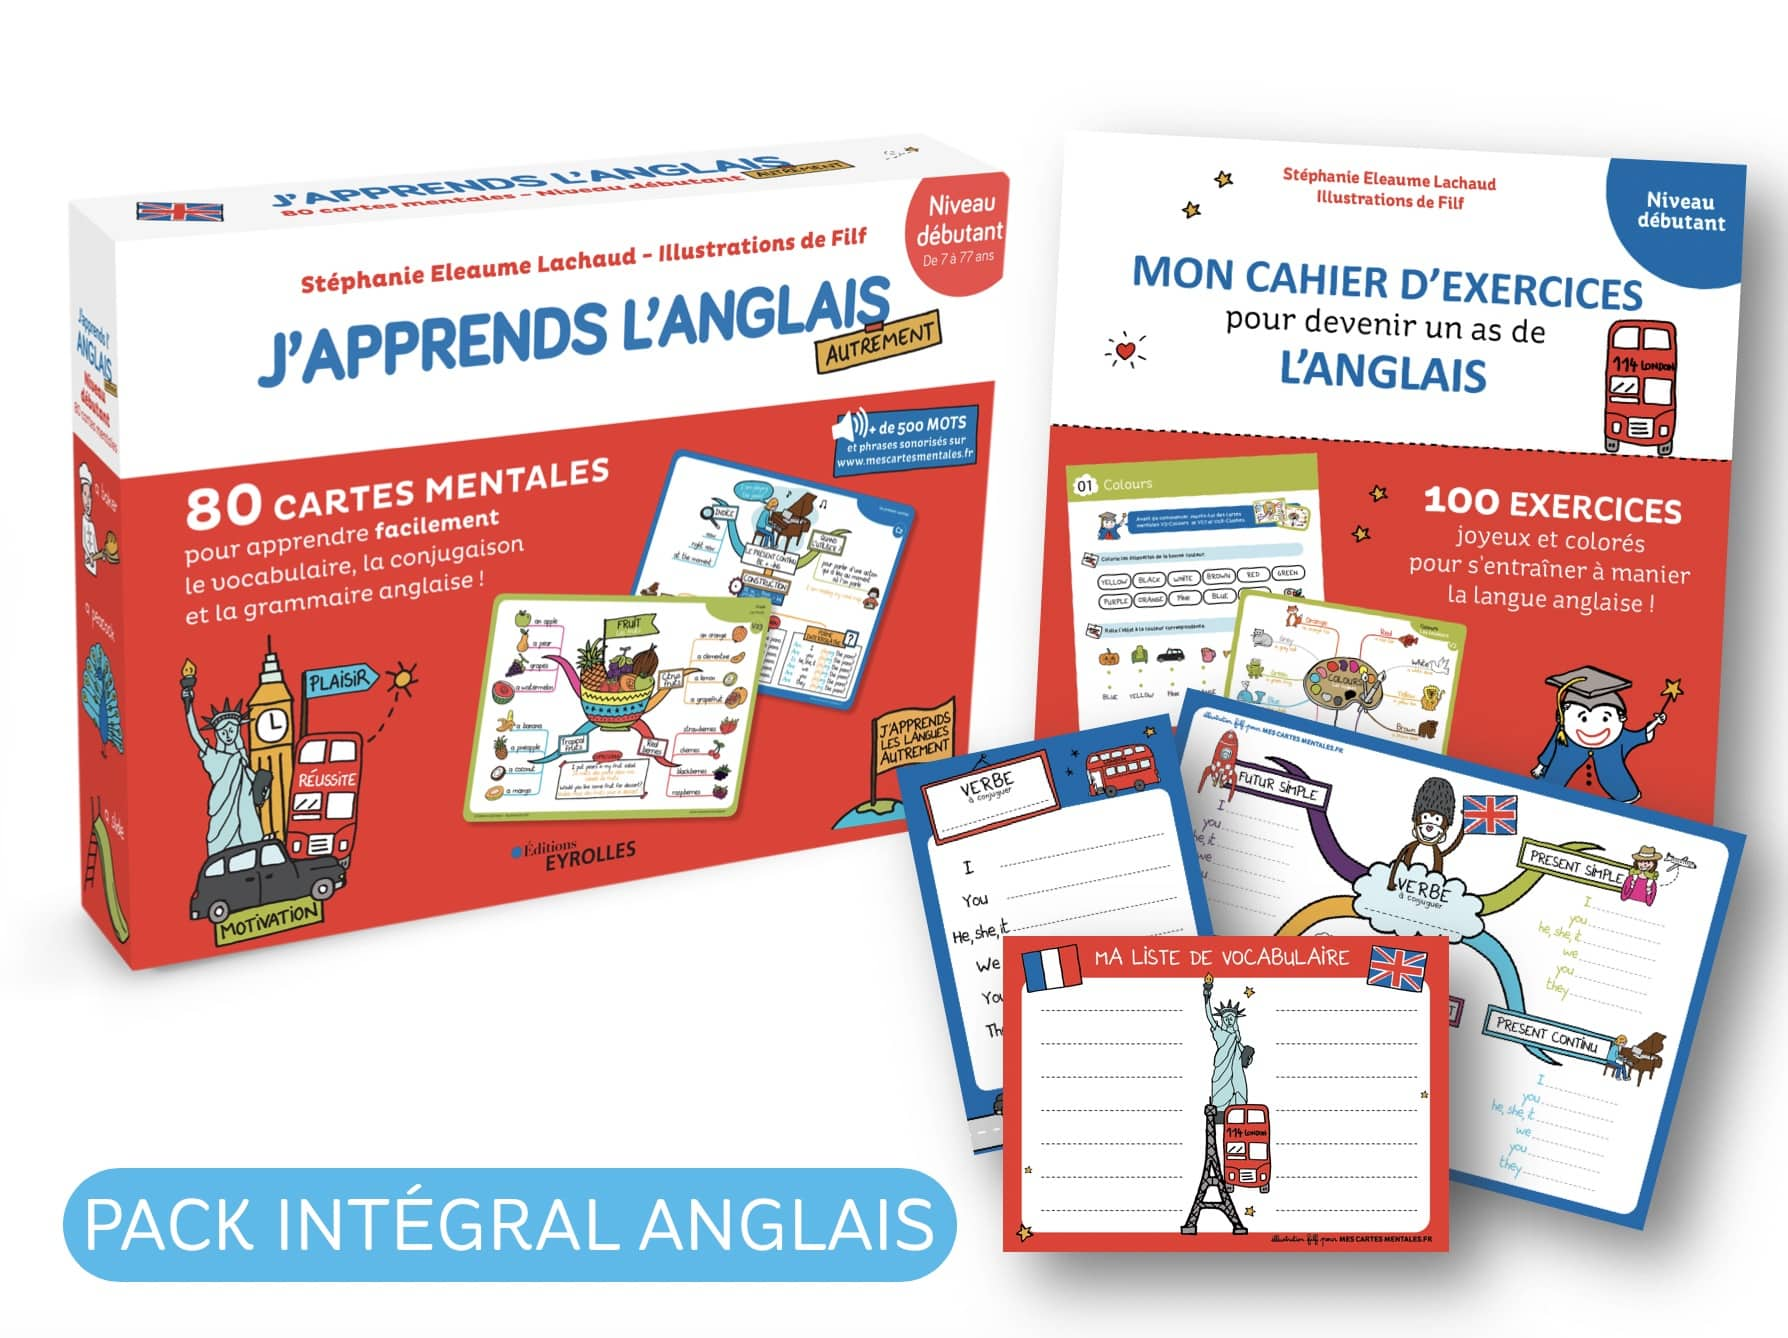 Pack intégral Anglais